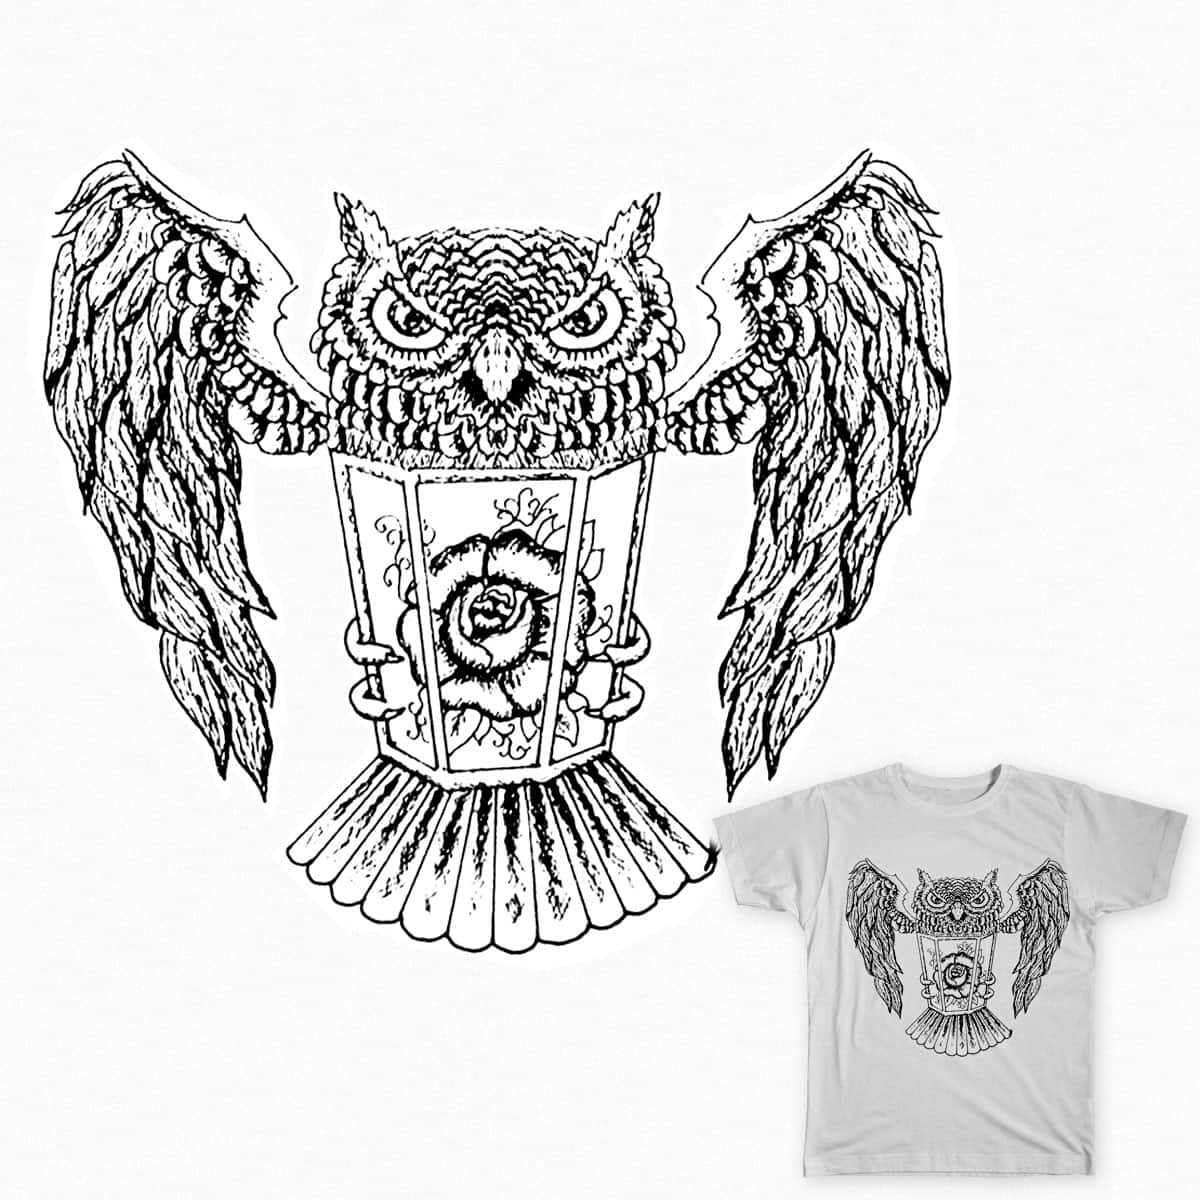 The Owl by stalin1303 on Threadless